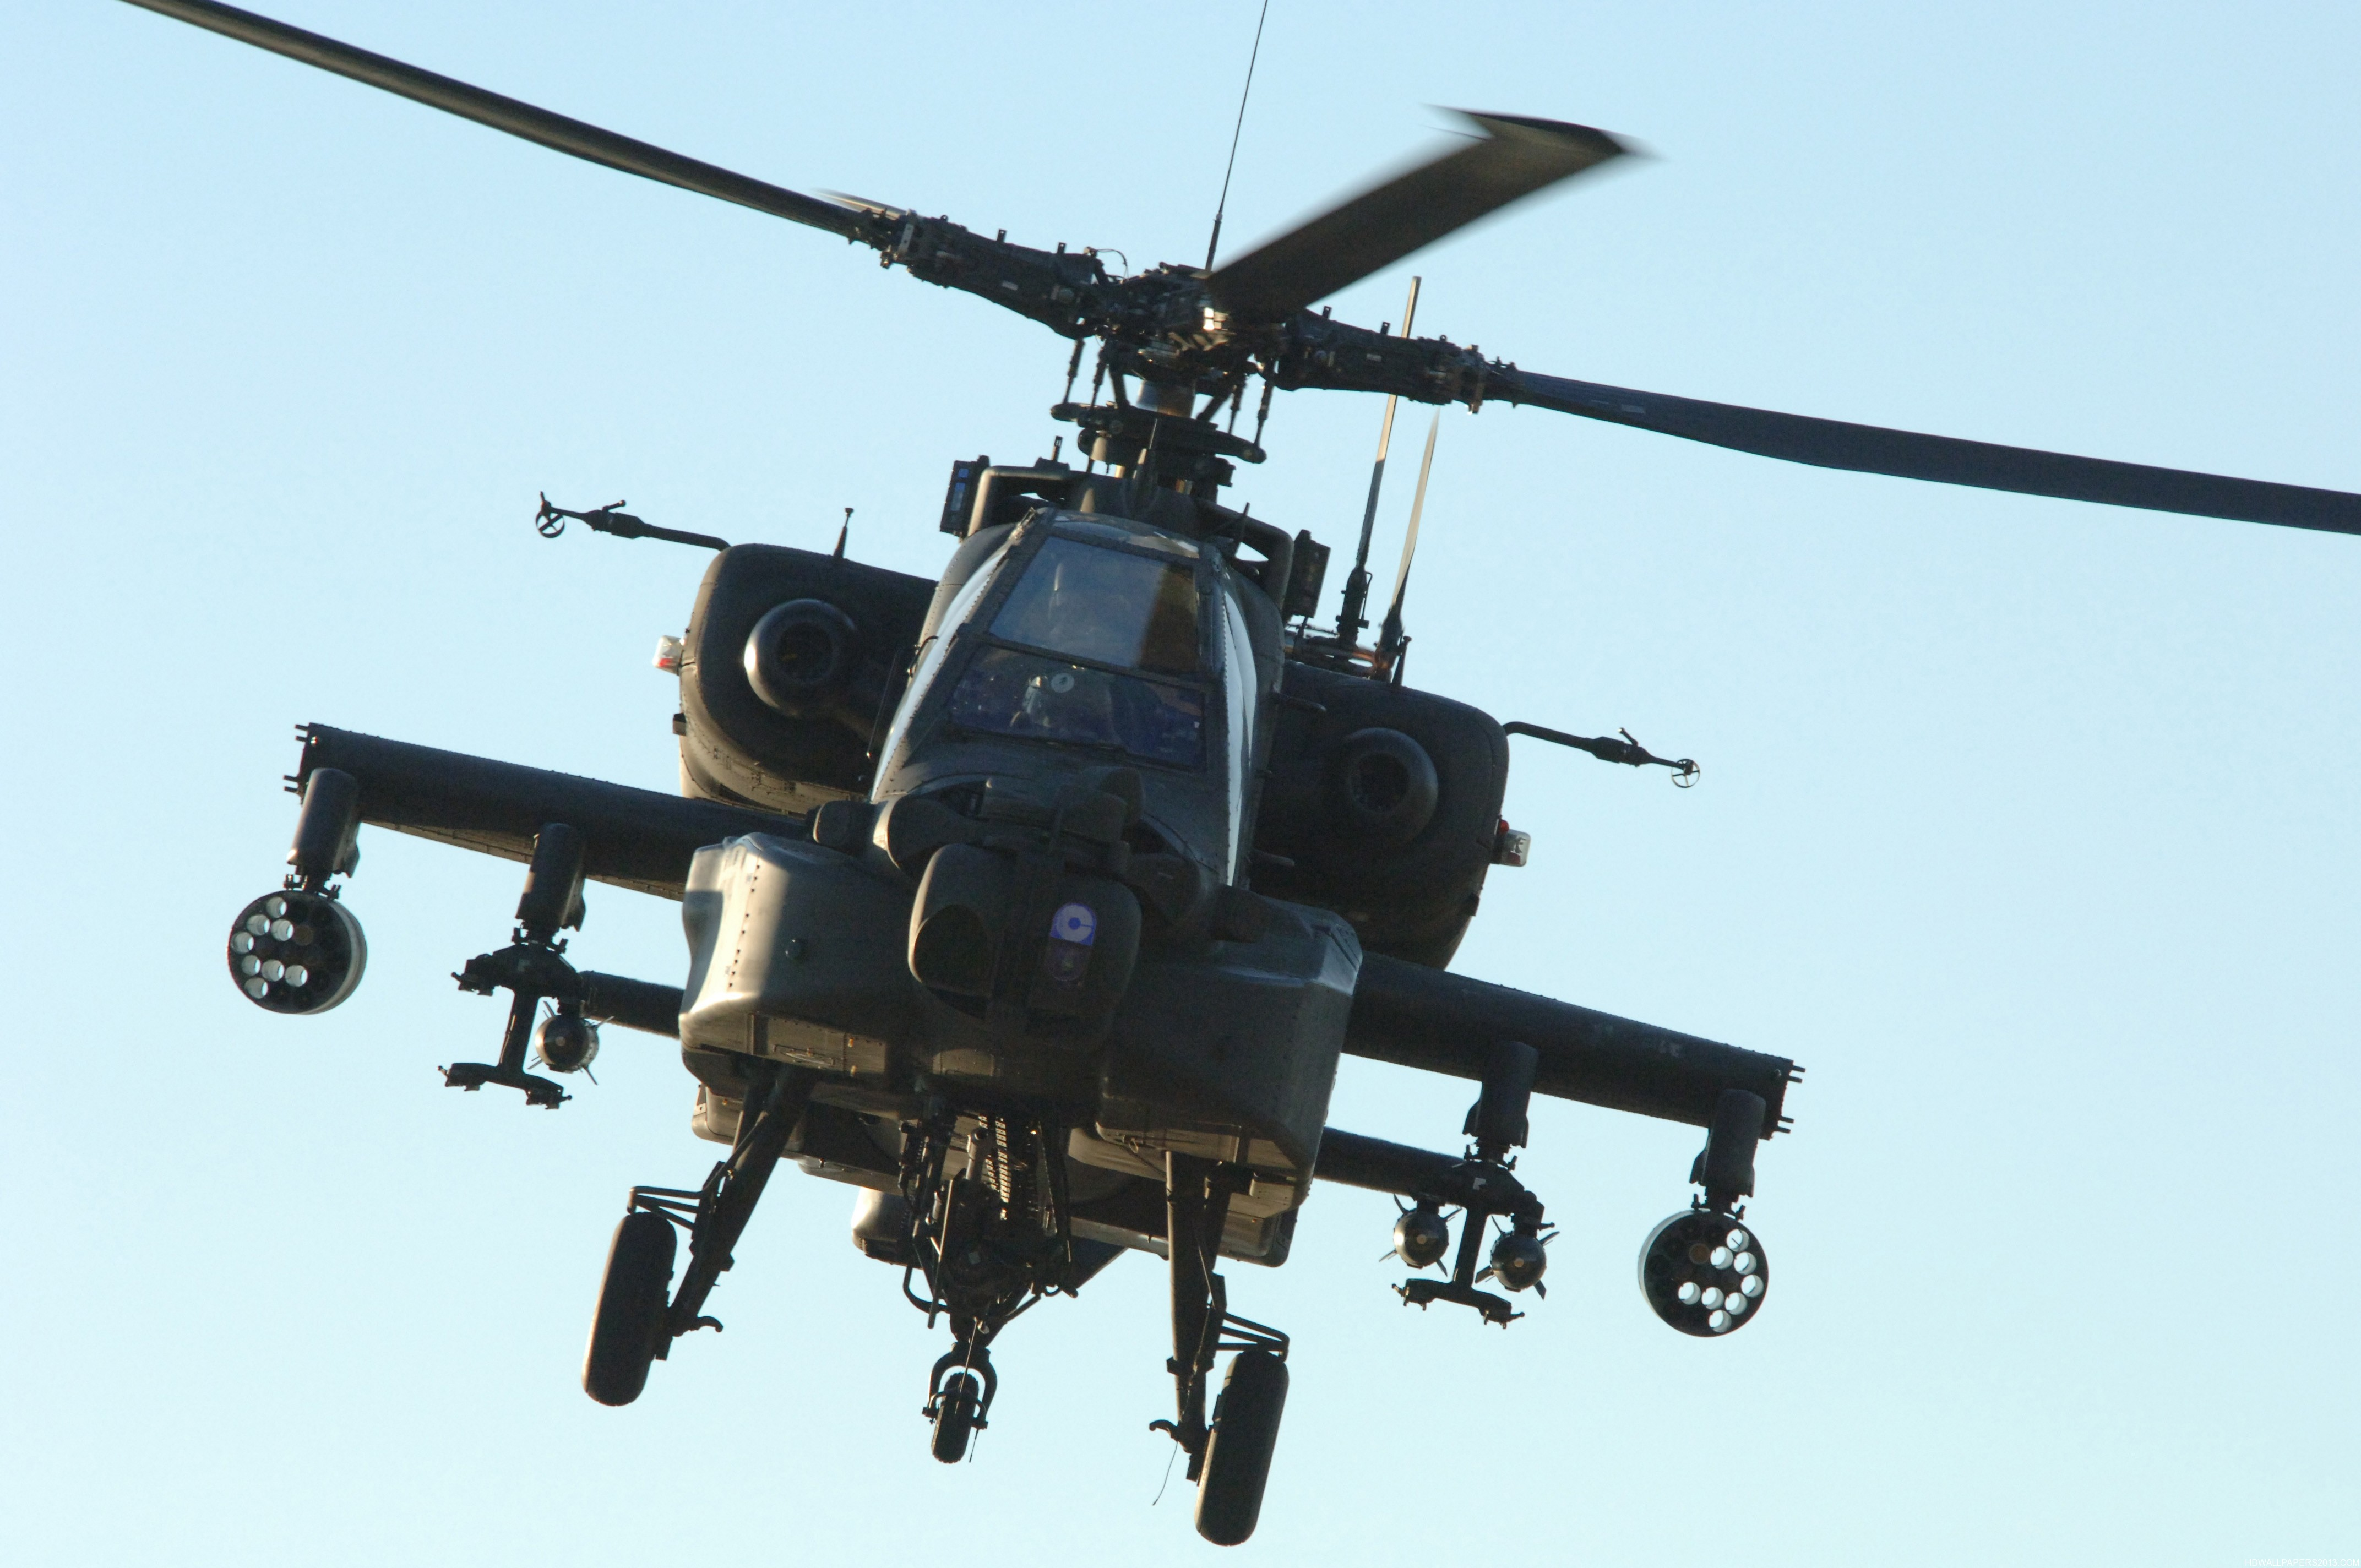 apache helicopter hd wallpaper with Apache Gunship on Apache Helicopter Wallpaper moreover Cobra Helicopter Desktop Background Wallpapers together with Ah 64 Pics additionally Helicopter Details moreover Tiger Tank Wallpaper Photos.